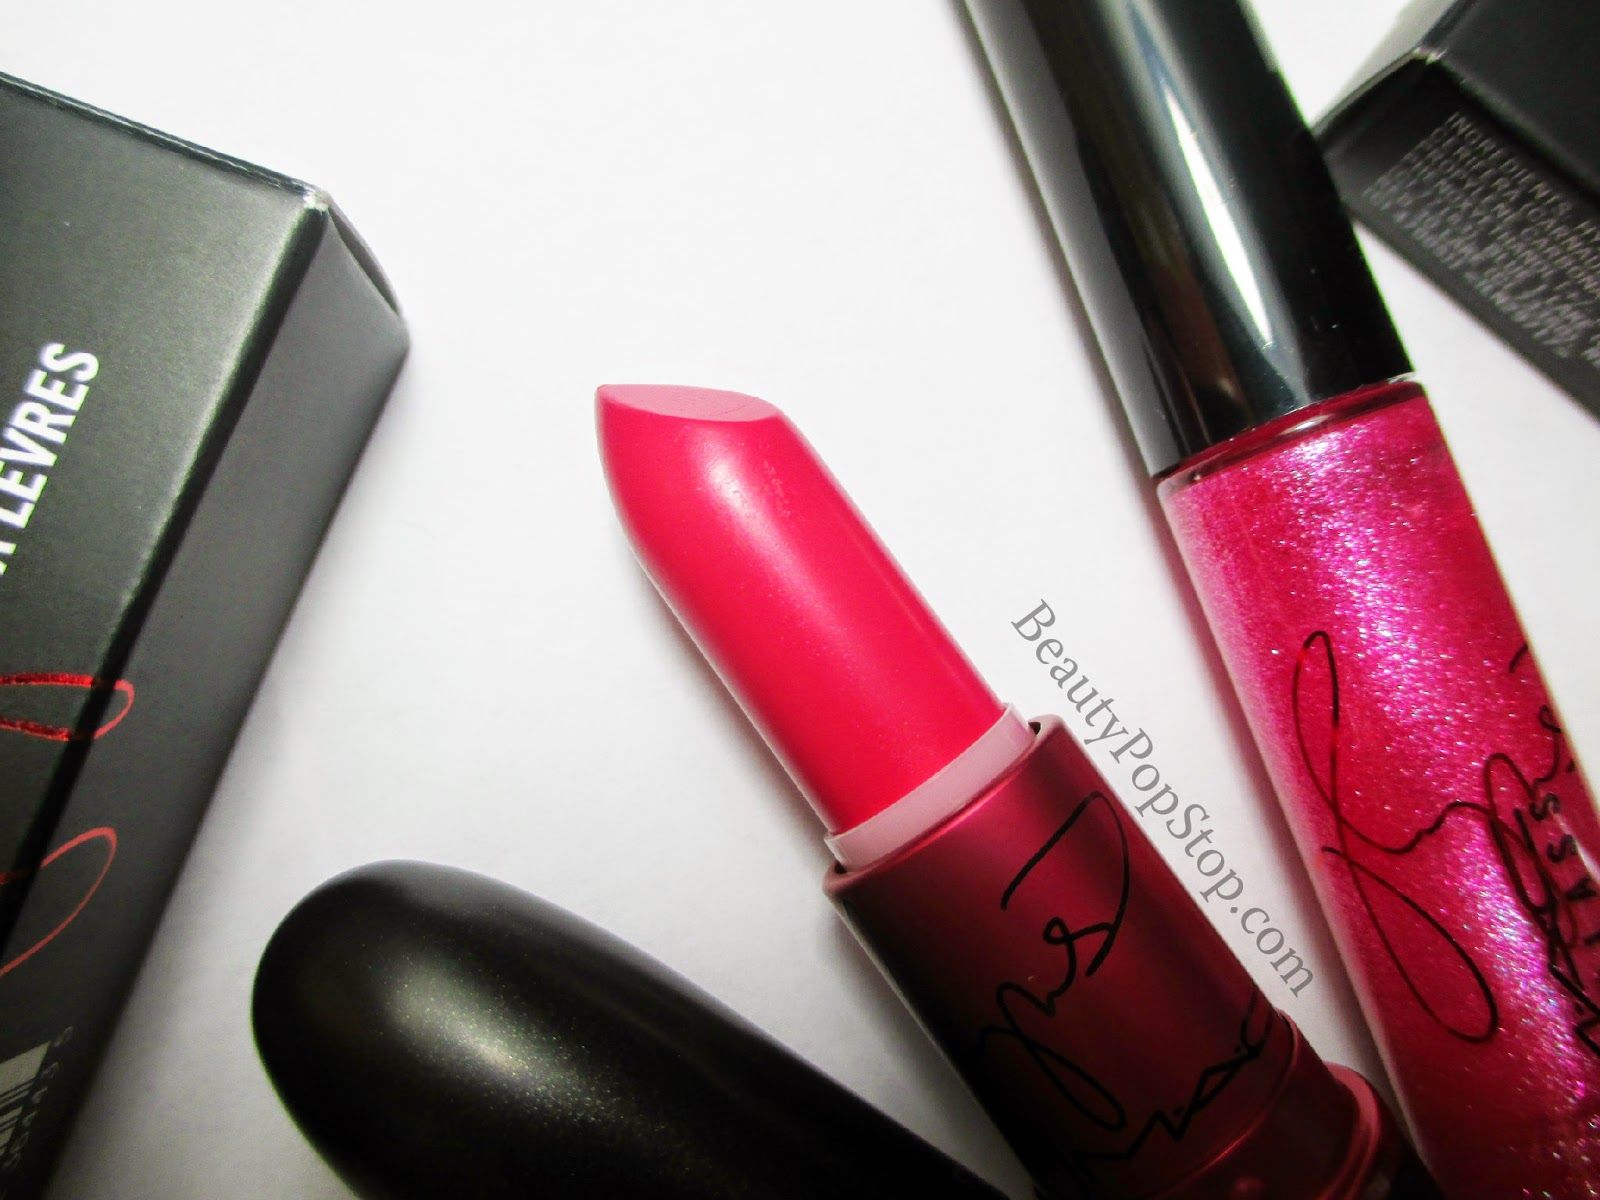 mac miley cyrus viva glam swatches and review